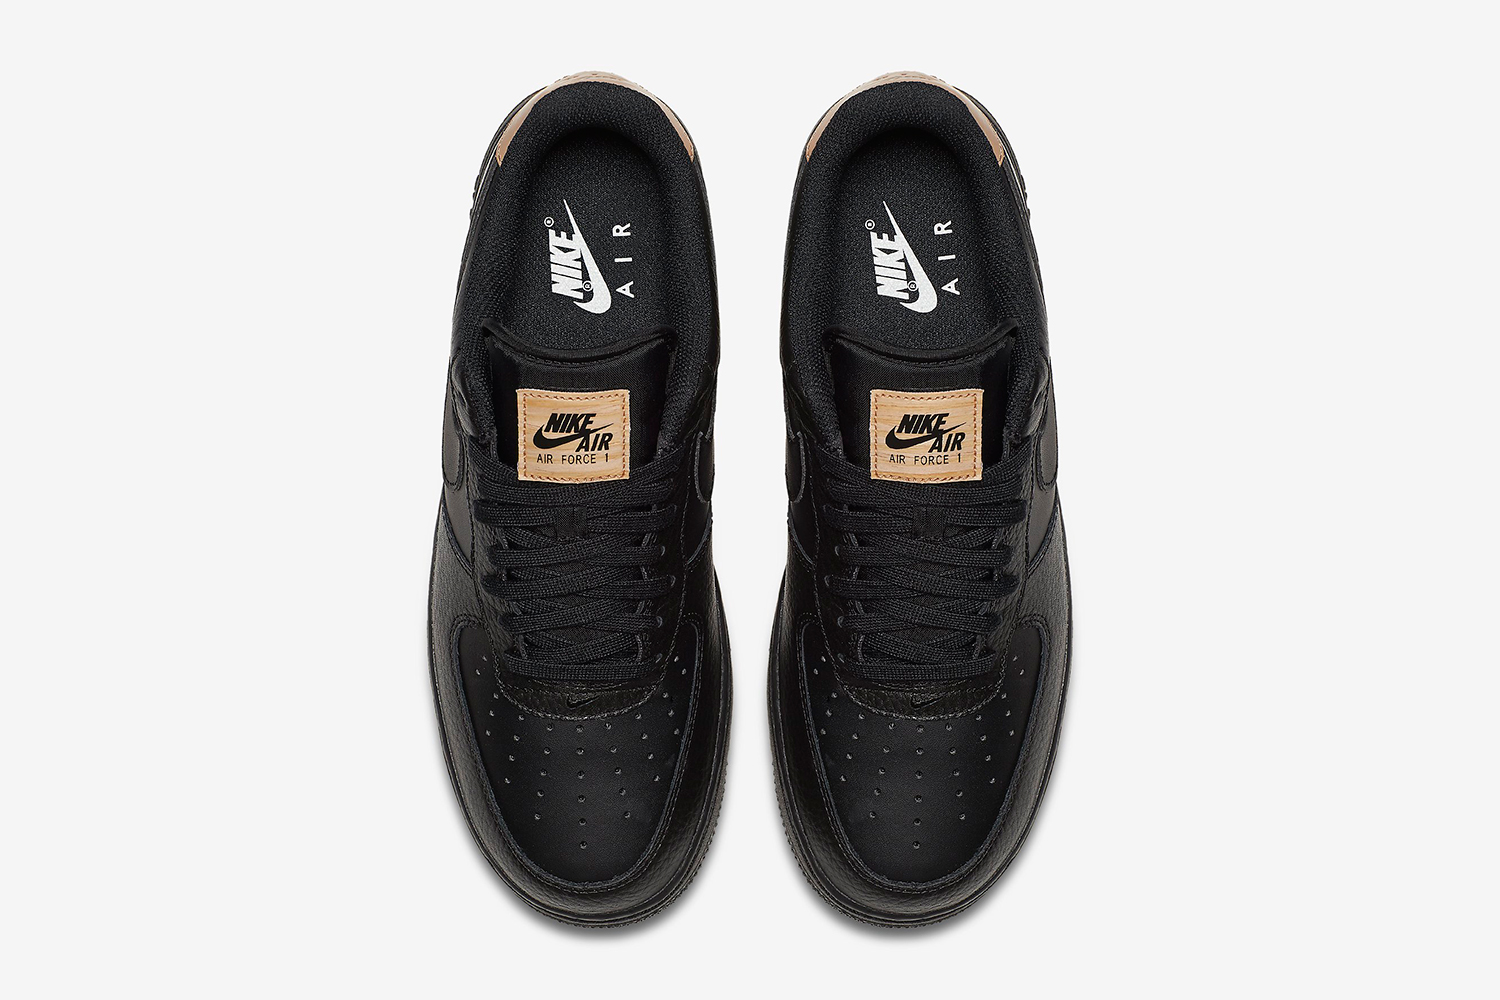 Nike Revamps Their Air Force 1 Model With A Premium Upgrade